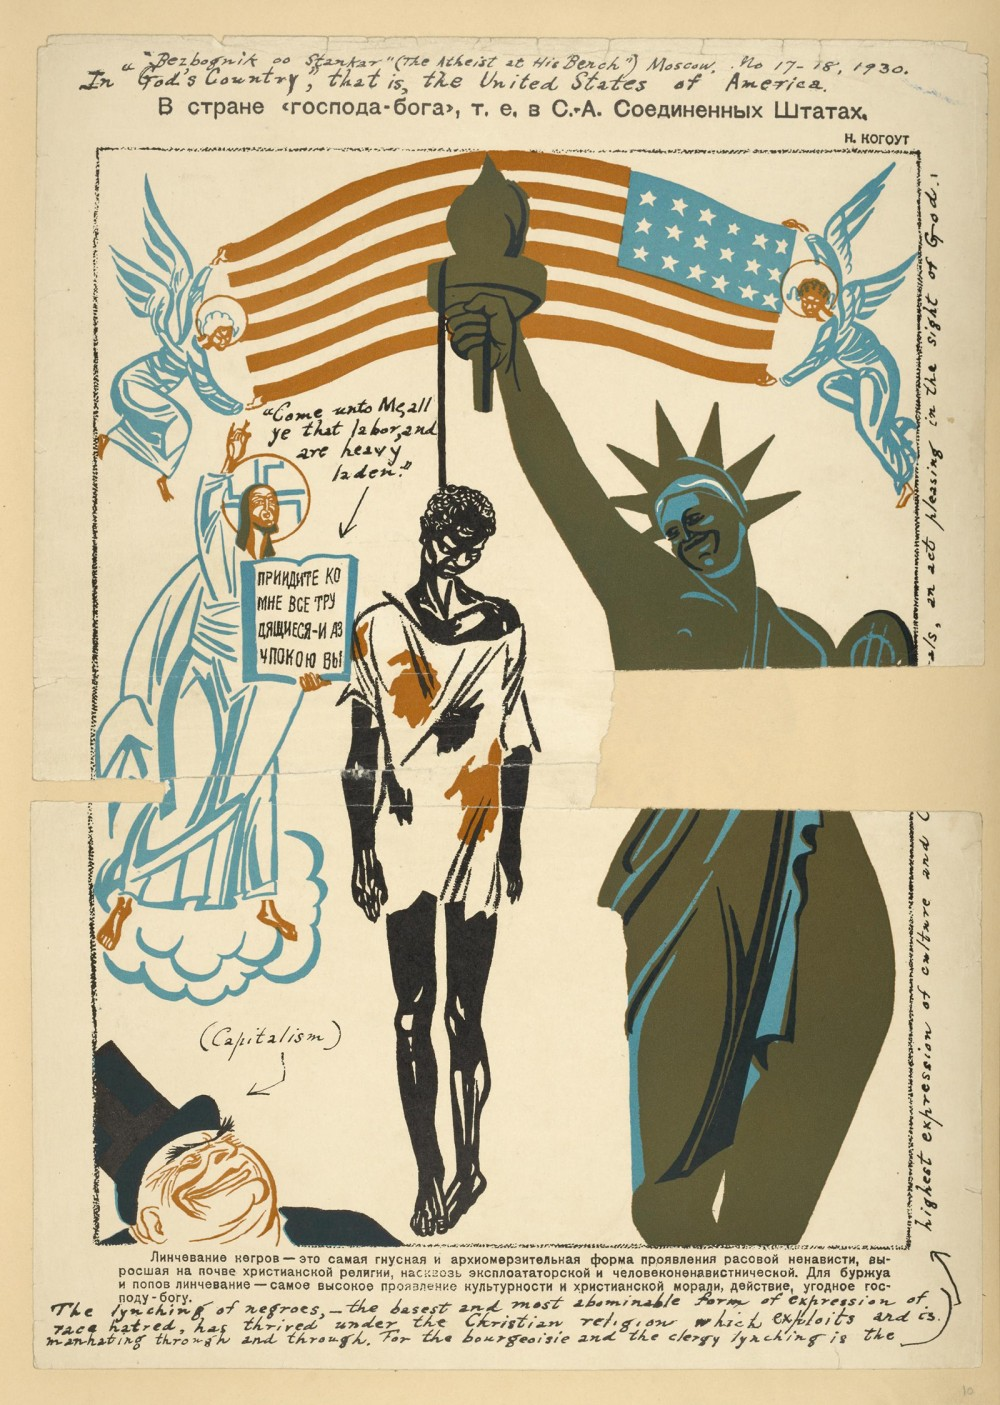 The Soviet Union took advantage of the very real racial tensions in the U.S. to create anti-American propaganda. This 1930 Soviet poster shows a black American being lynched from the Statue of Liberty, while the text below asserts the links between racism and Christianity. 1930 issue of Bezbozhnik. Wikimedia, http://commons.wikimedia.org/wiki/File:Bezbozhnik_u_stanka_US_1930.jpg.